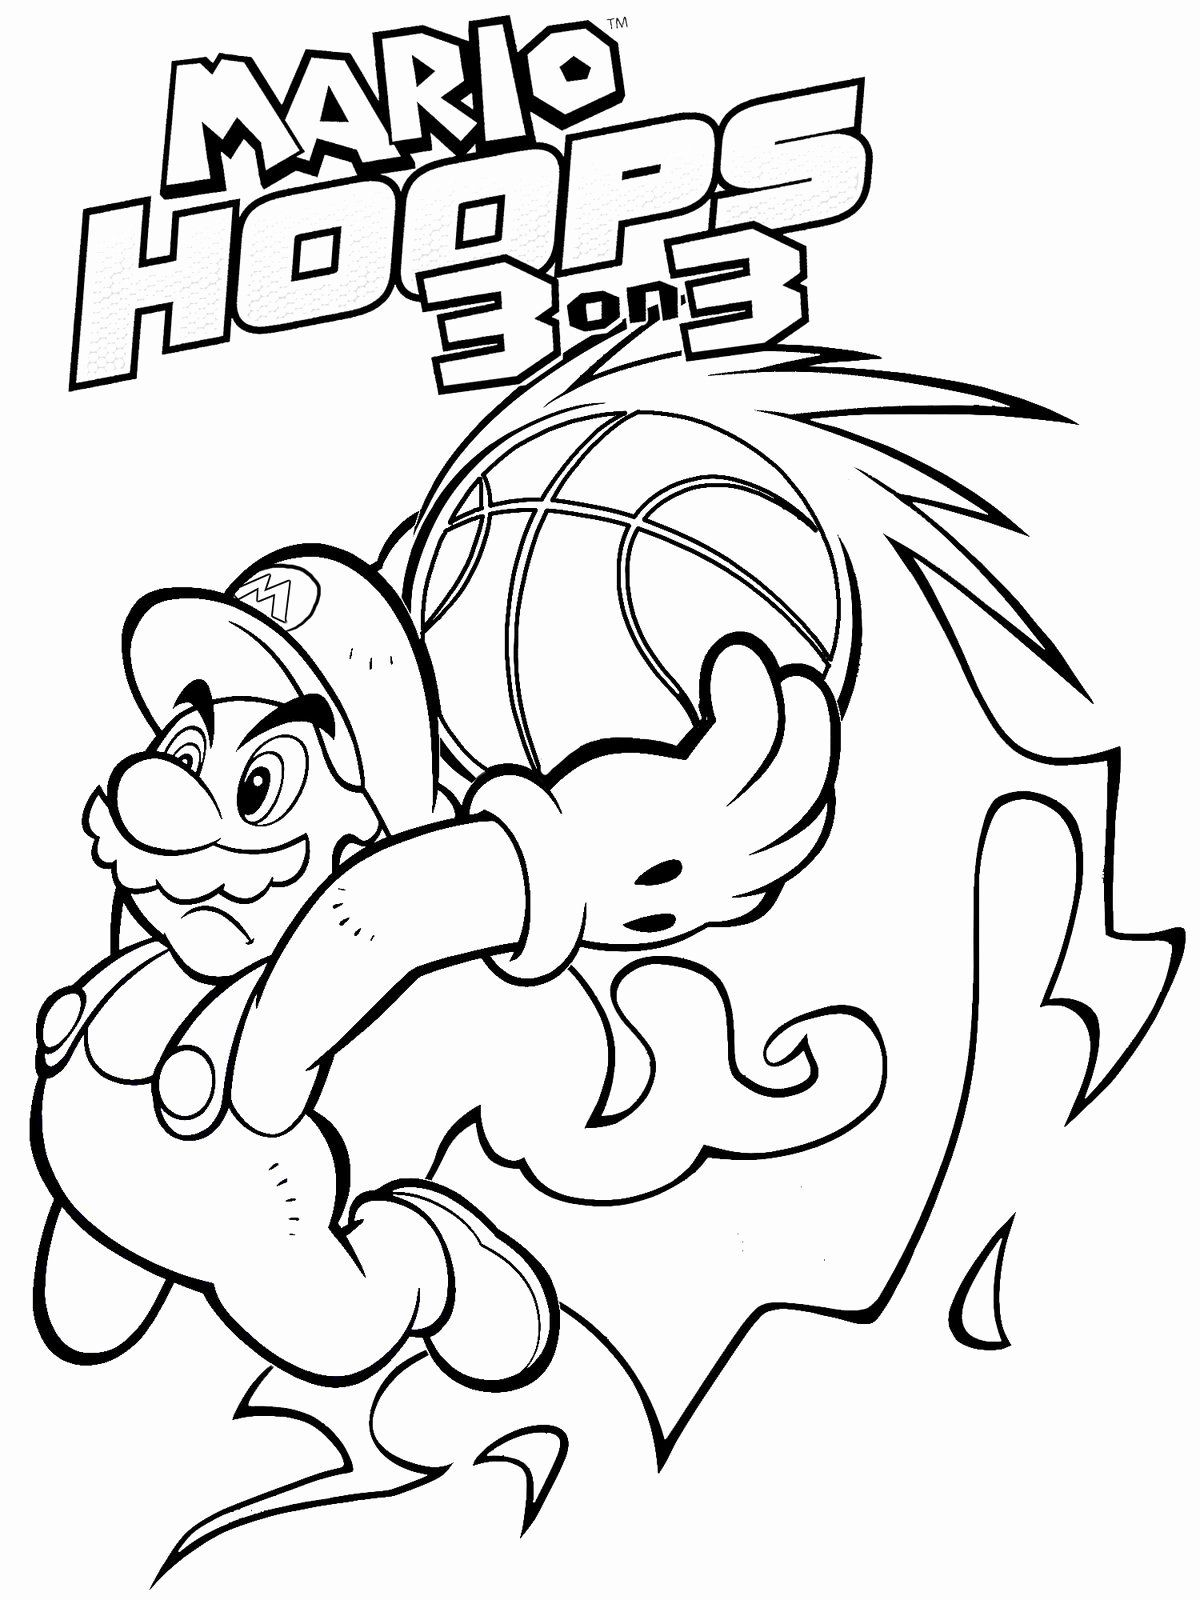 32 Super Mario Brothers Coloring Page in 2020   Super ...